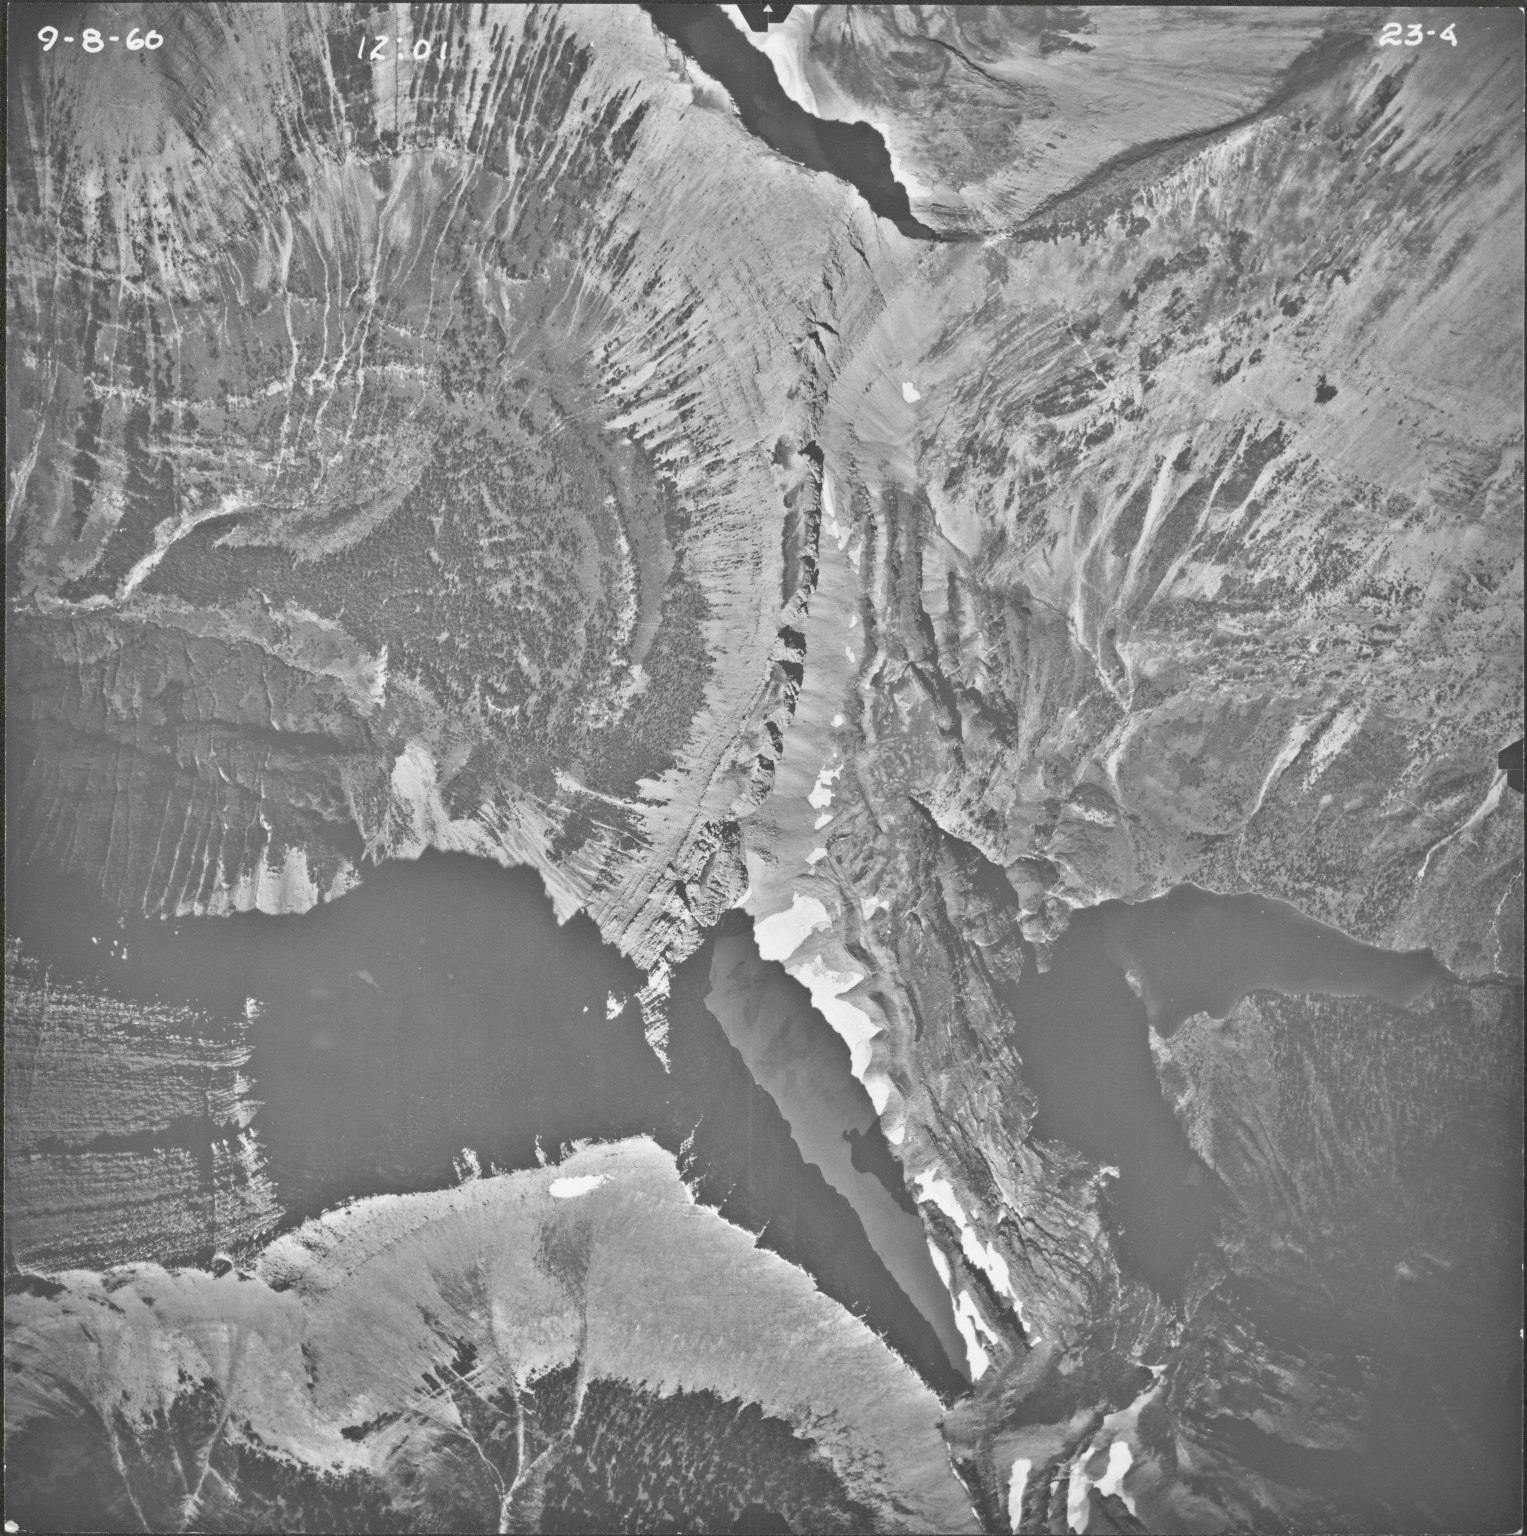 Triple Divide Peak, aerial photograph 23-4, Montana